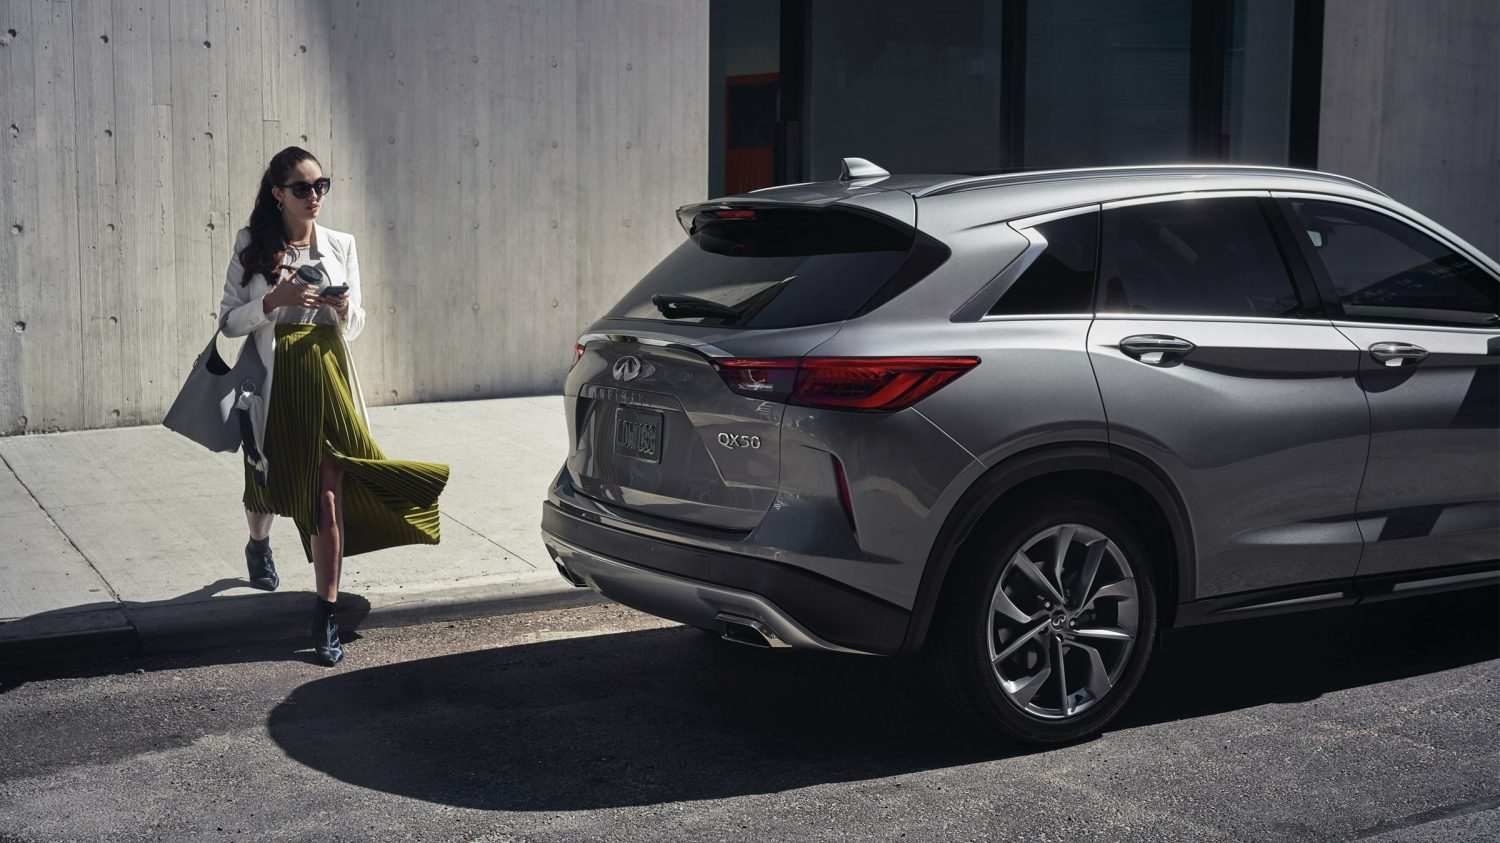 2020 INFINITI QX50 Luxury Crossover Parked Besides Female Model2020 INFINITI QX50 Luxury Crossover Parked Besides Female Model